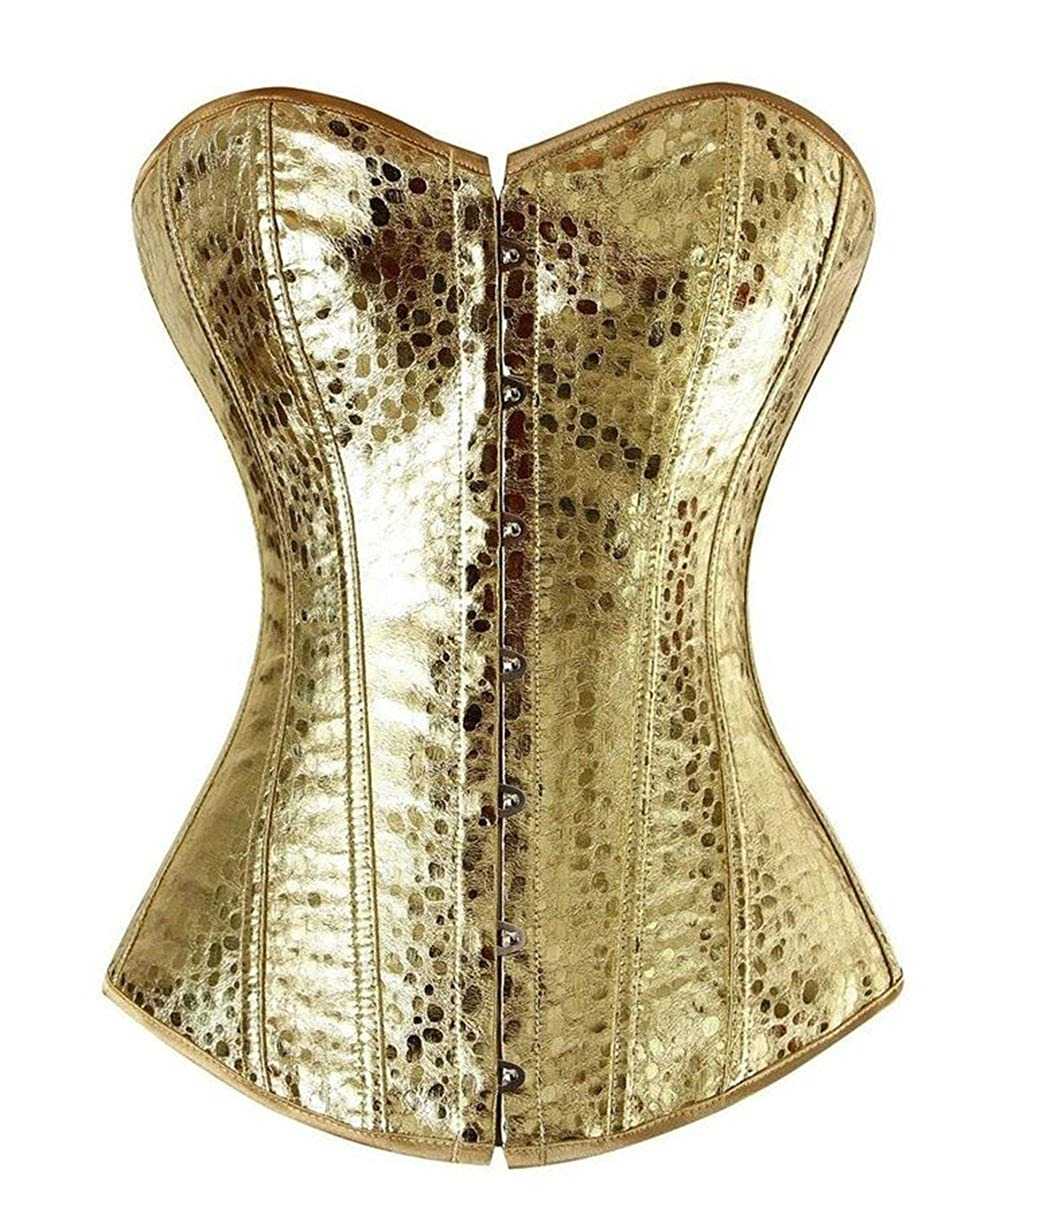 gold frawirshau Faux Leather Corsets for Women Lace up Boned Waist Cincher Bustier Lingerie Overbust Gothic Corset Top